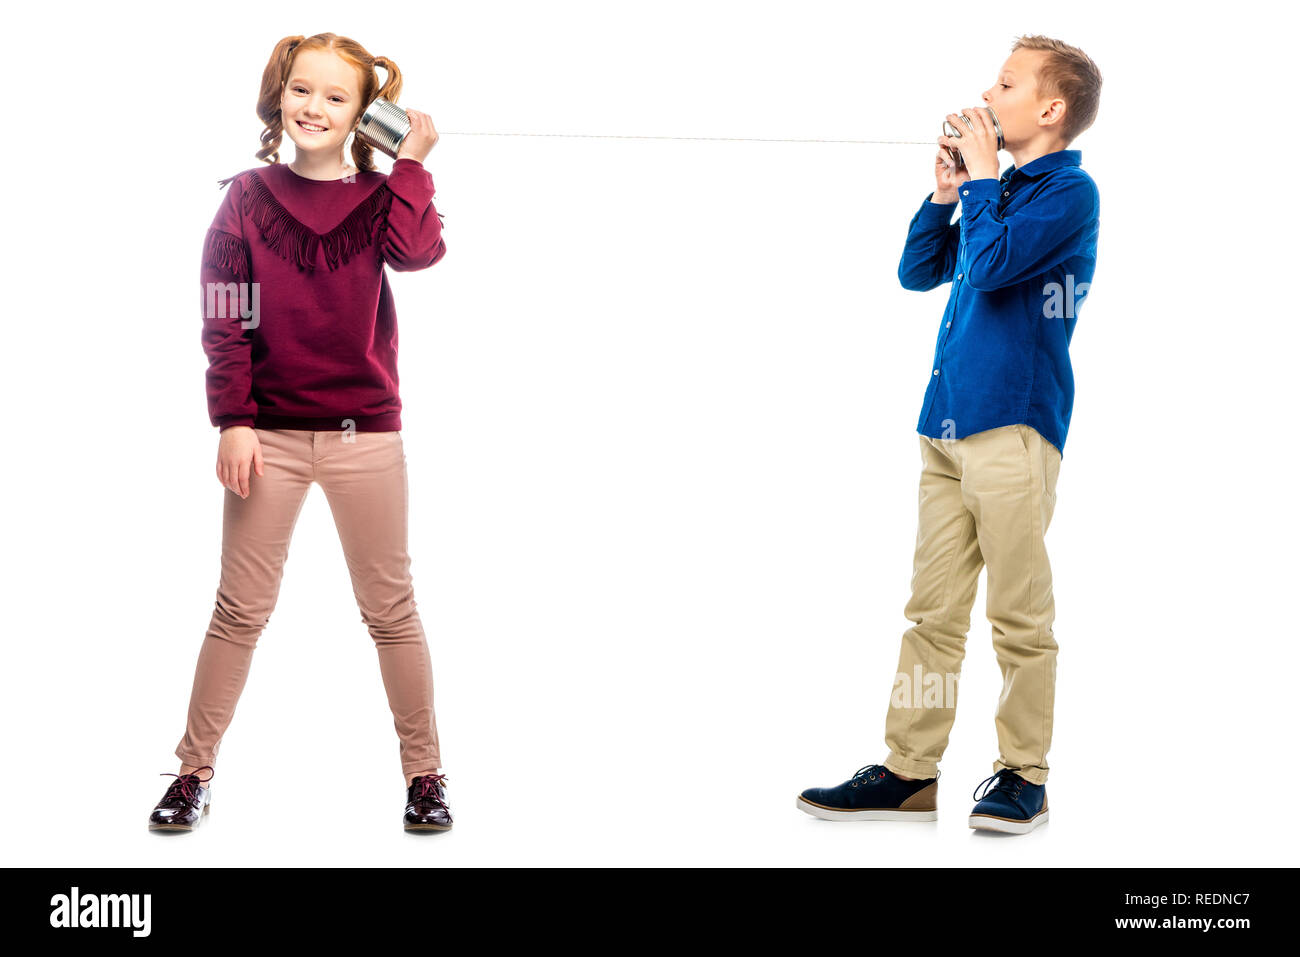 smiling kids play with tins connected by rope isolated on white - Stock Image